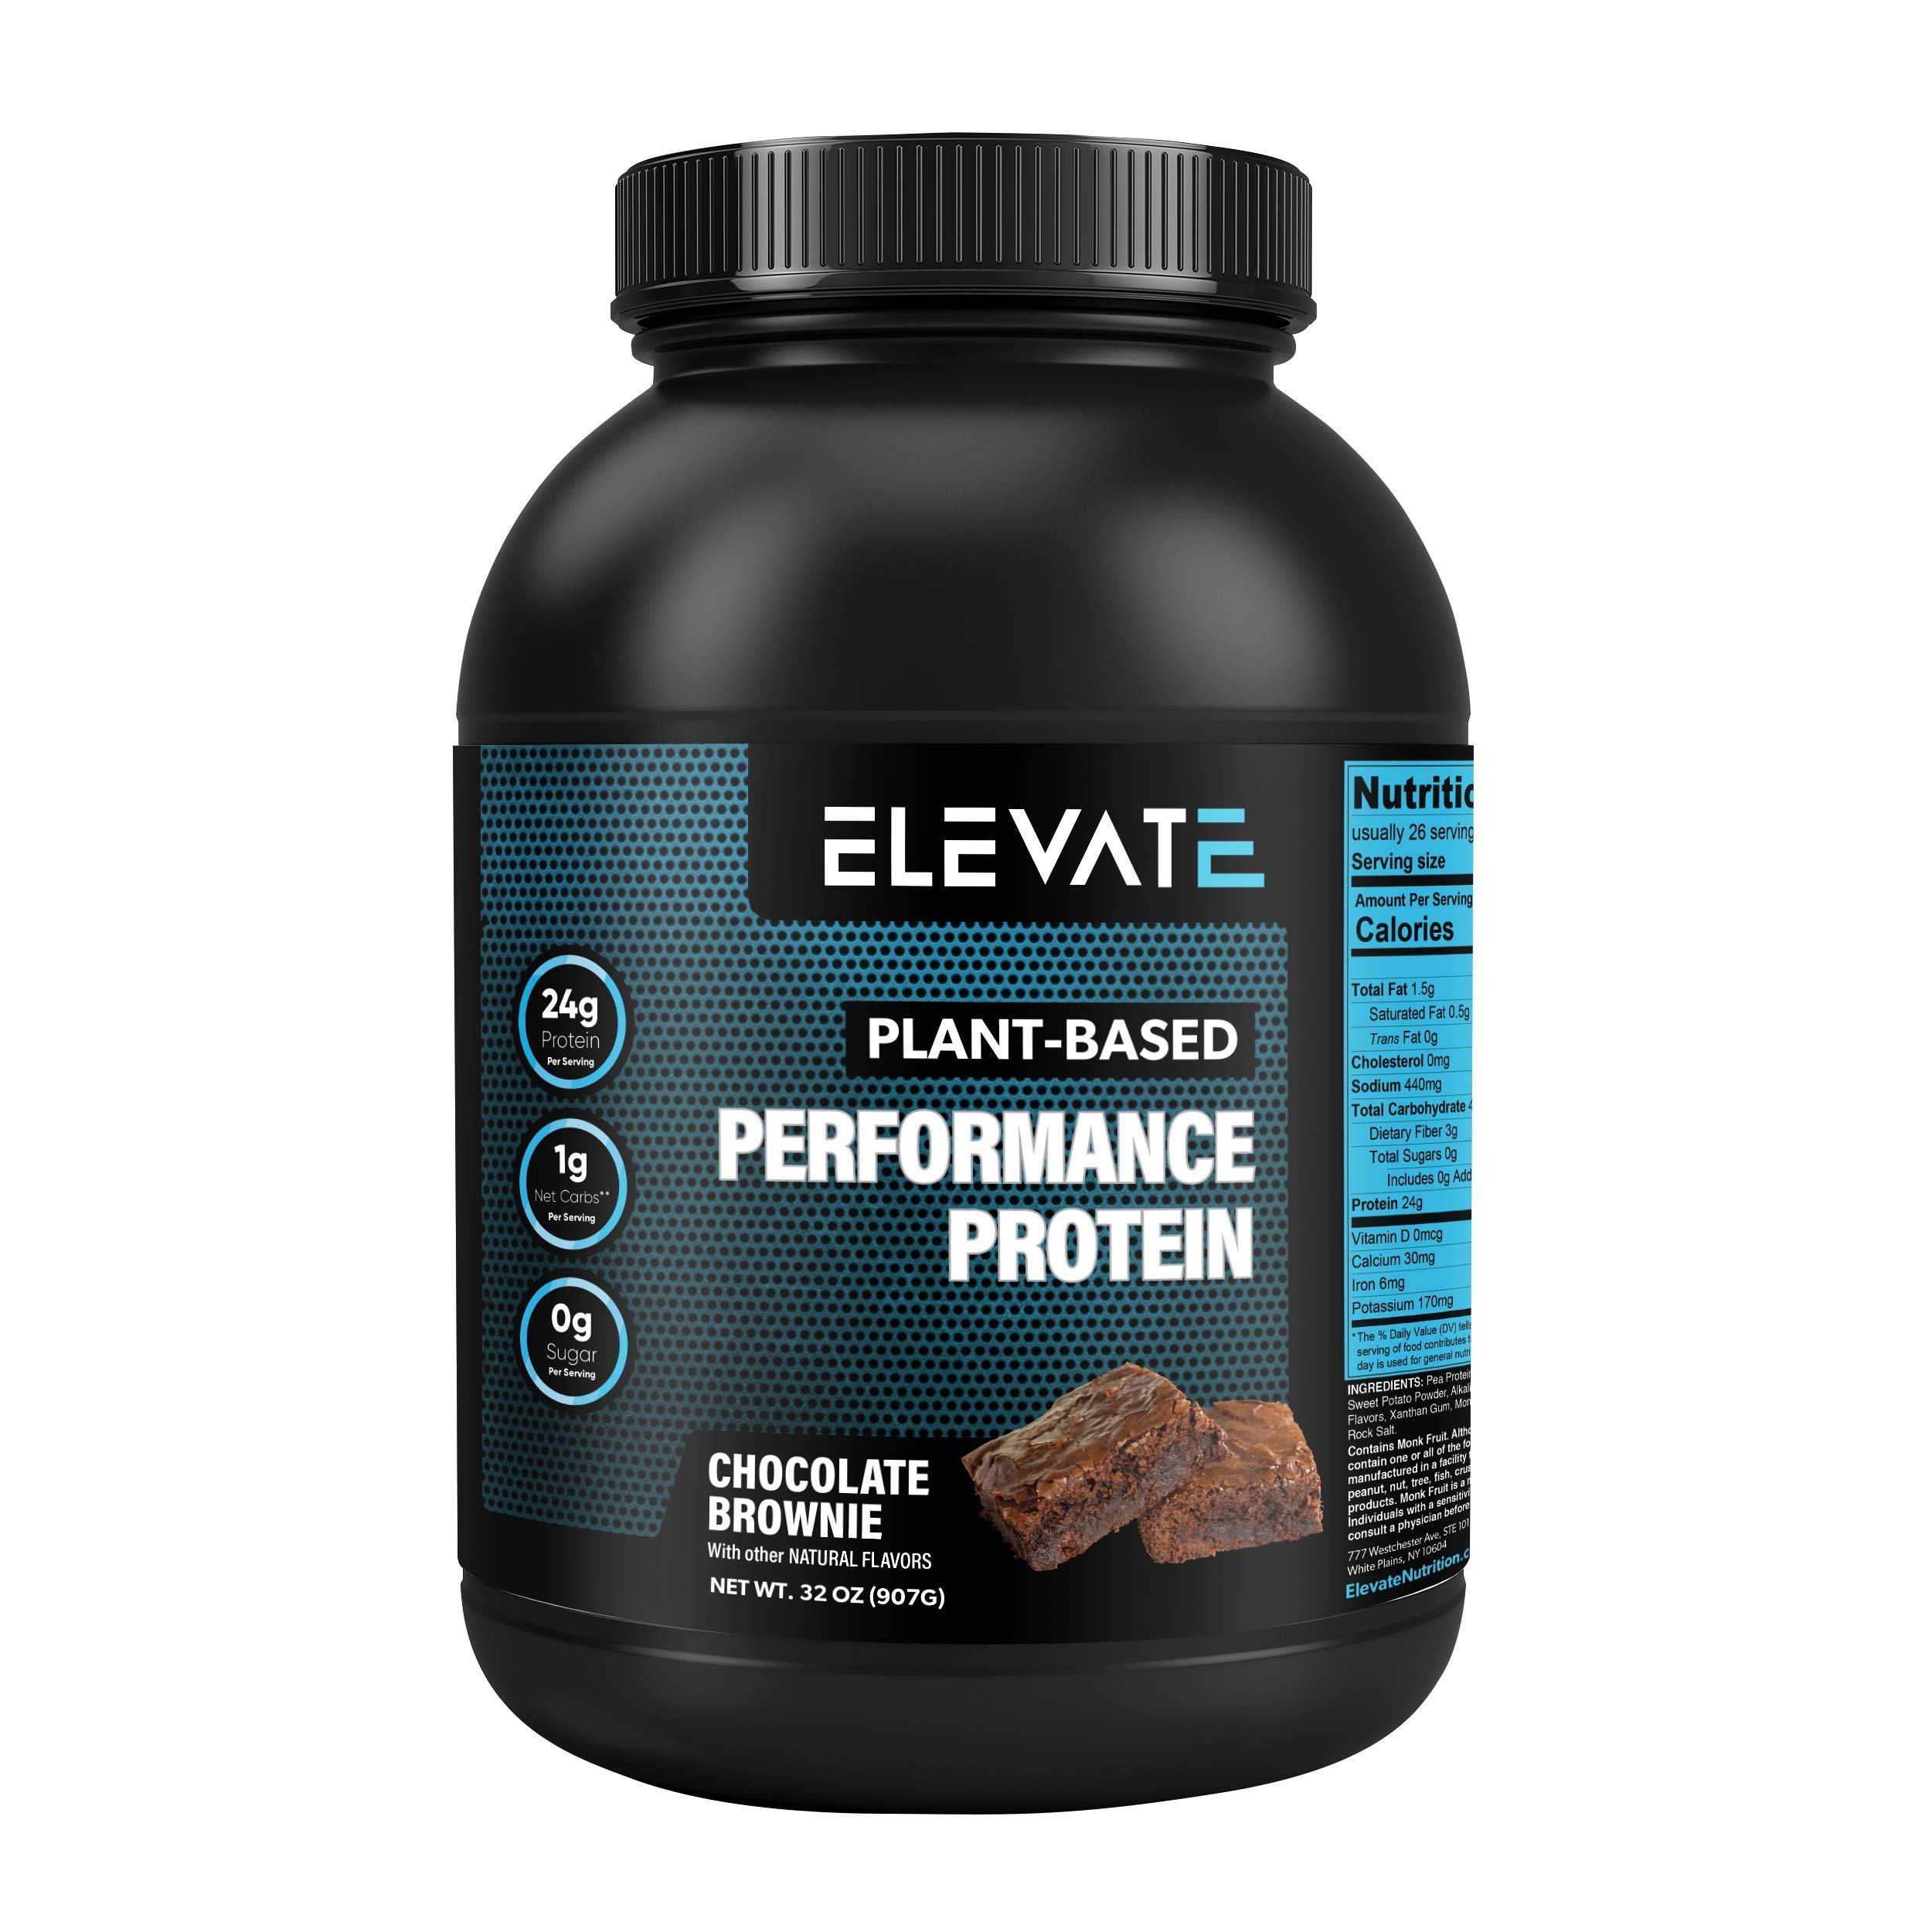 Elevate Nutrition Plant-Based Vegan Performance Protein Powder